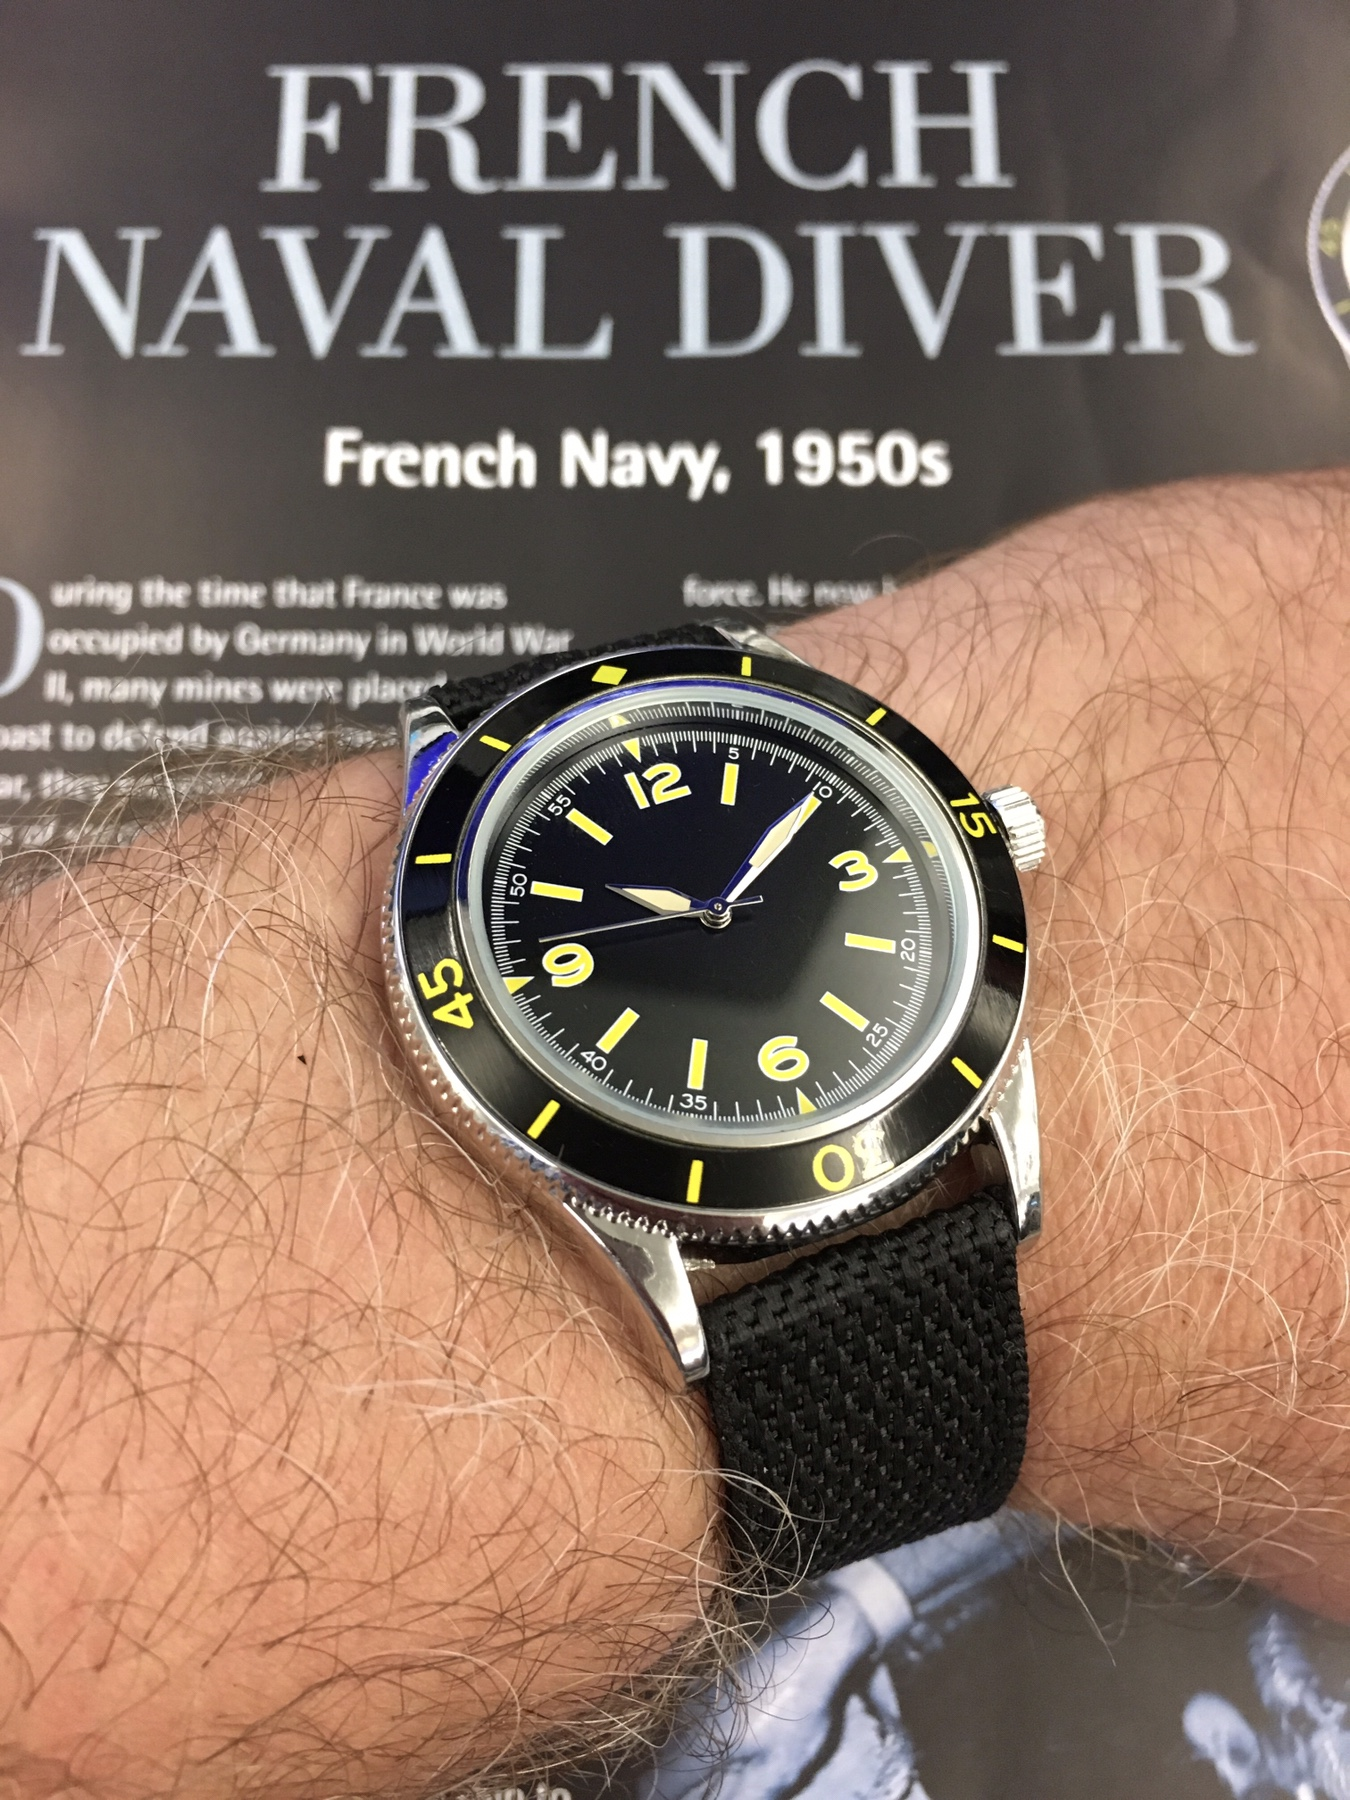 aviator b navy watches gladiators naval by flickr swisspl photos watch vfa